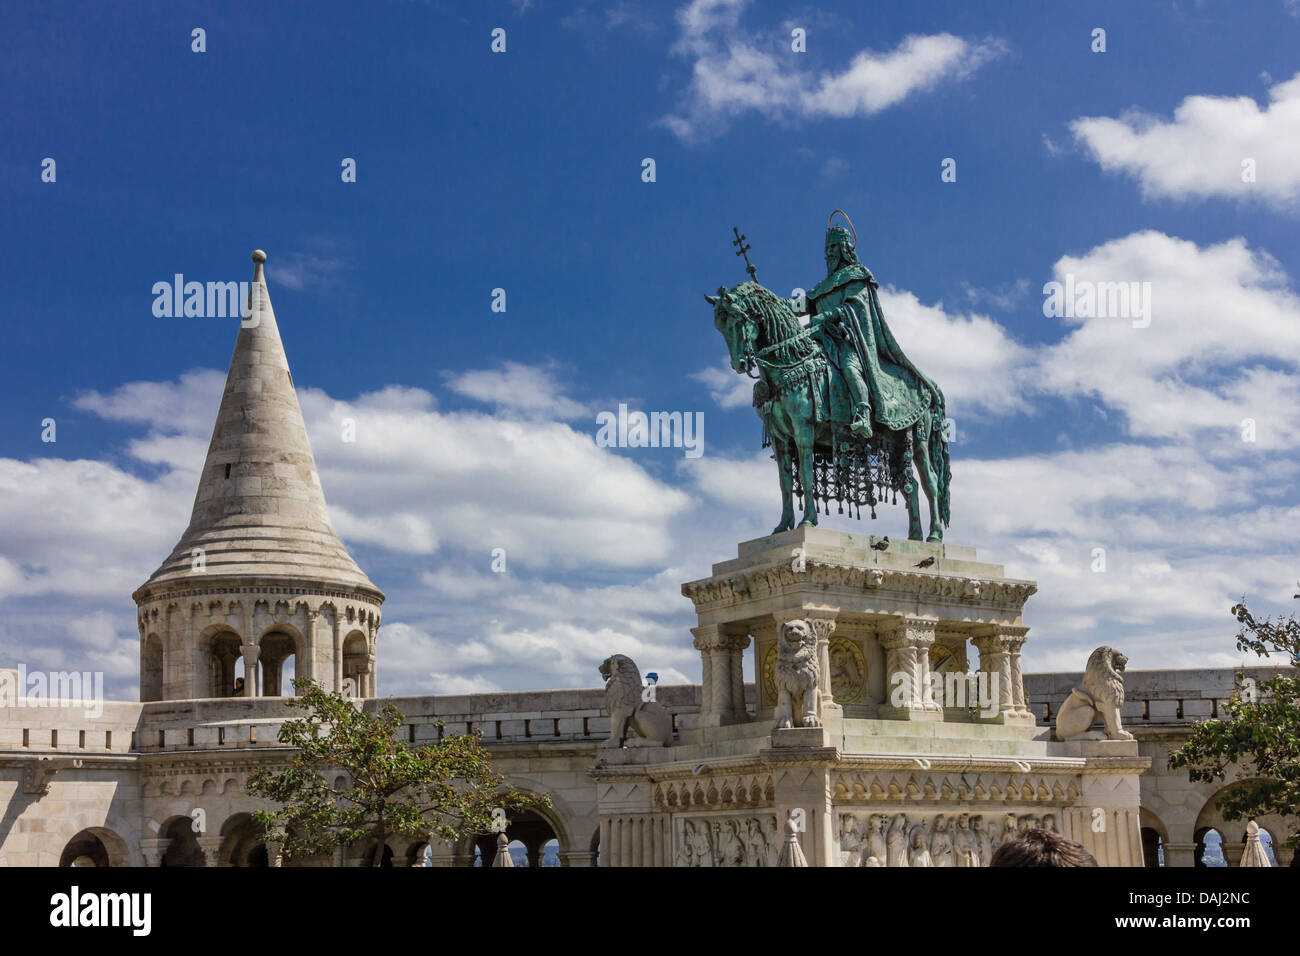 Equestrian statue of Stephen I of Hungary at the Fisherman's Bastion in Budapest - Stock Image